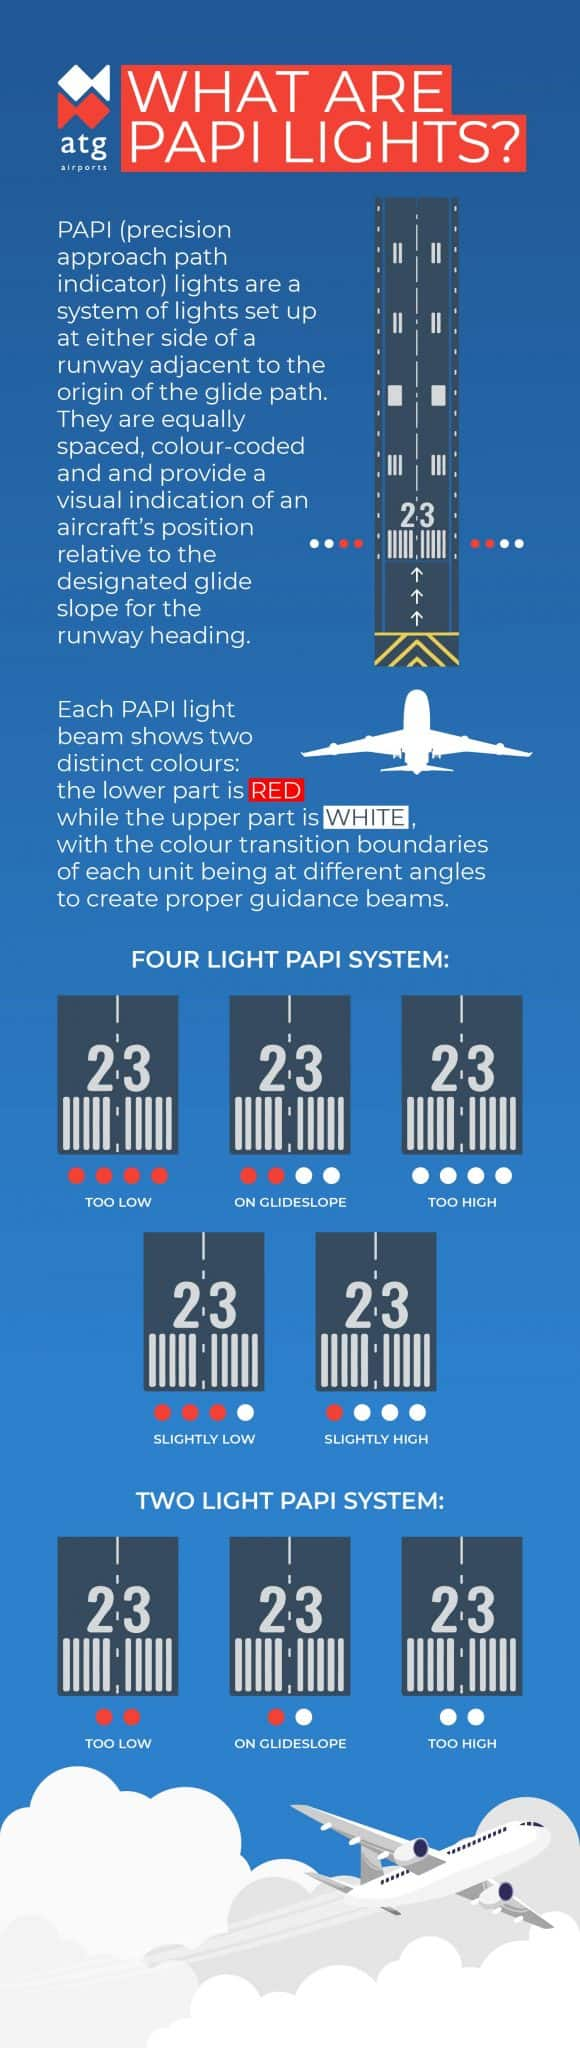 What are PAPI Lights Infographic